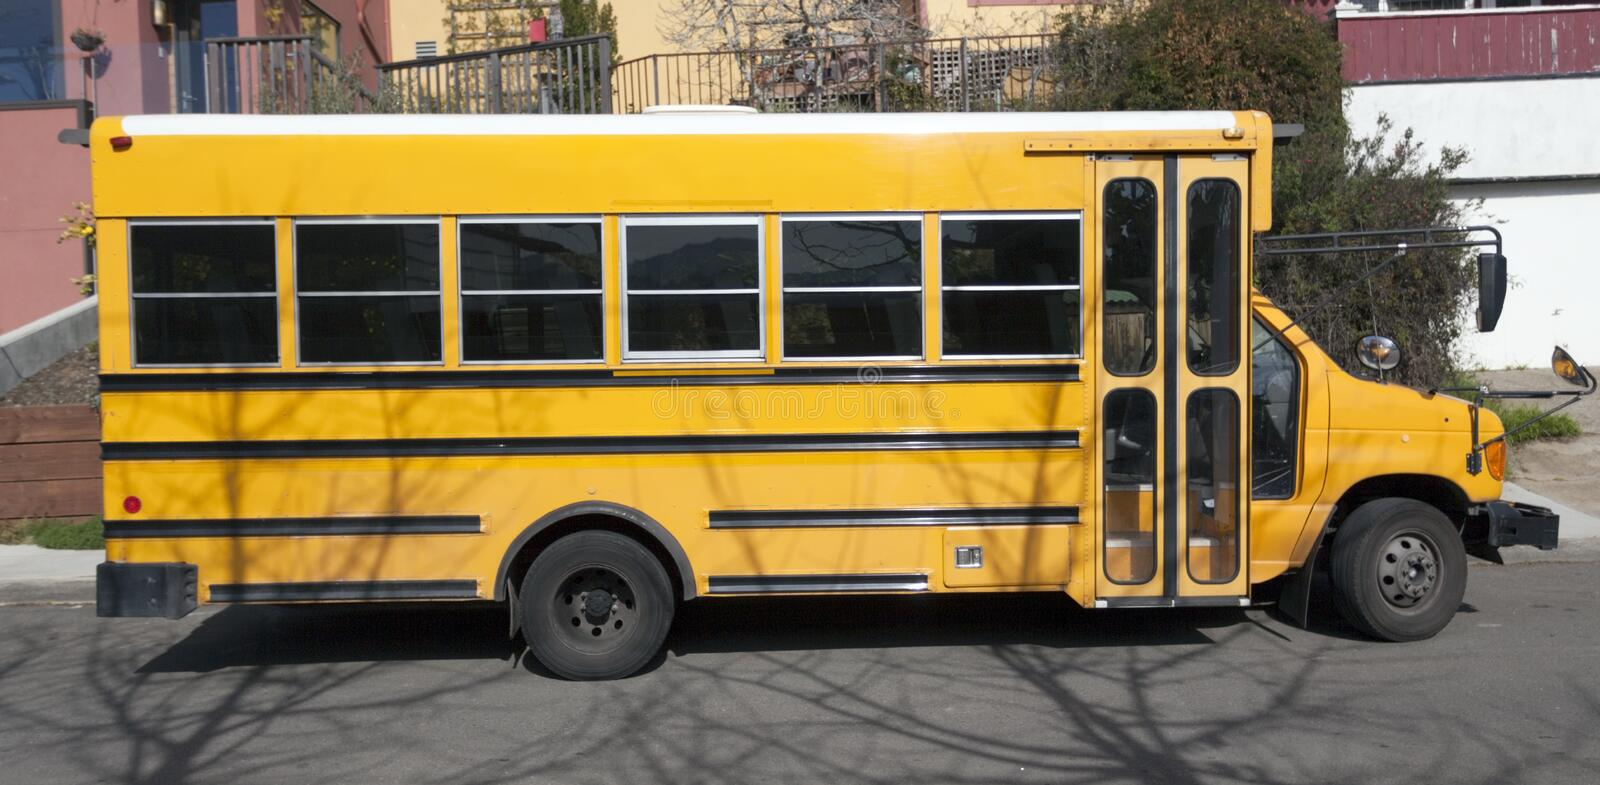 Parked Short Yellow School Bus royalty free stock photography